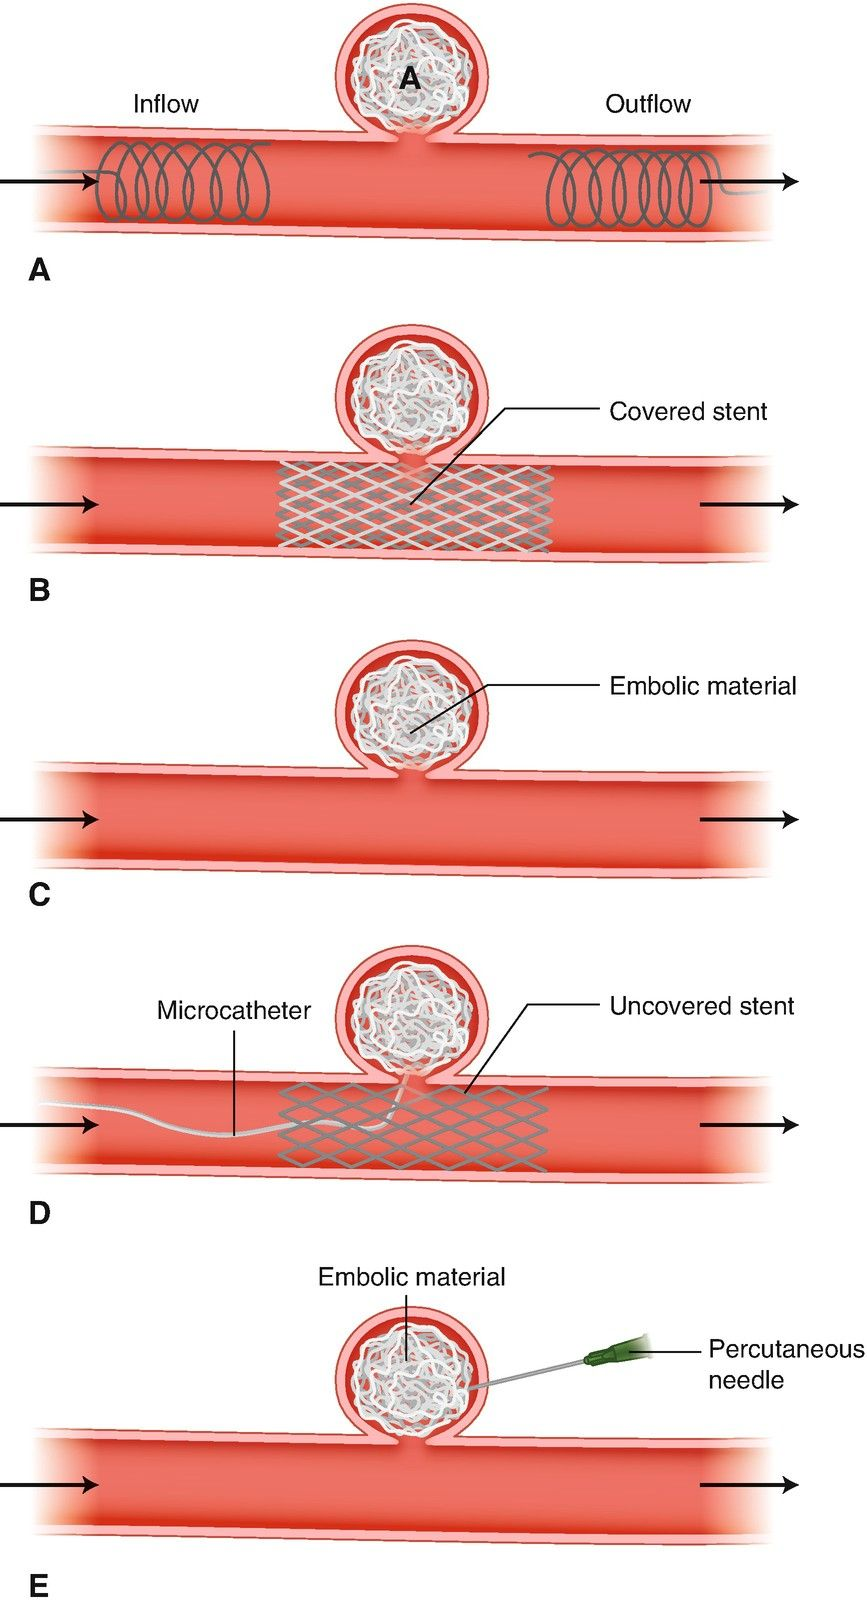 Pin by Lina Muhsen on Endovascular devices/interventions